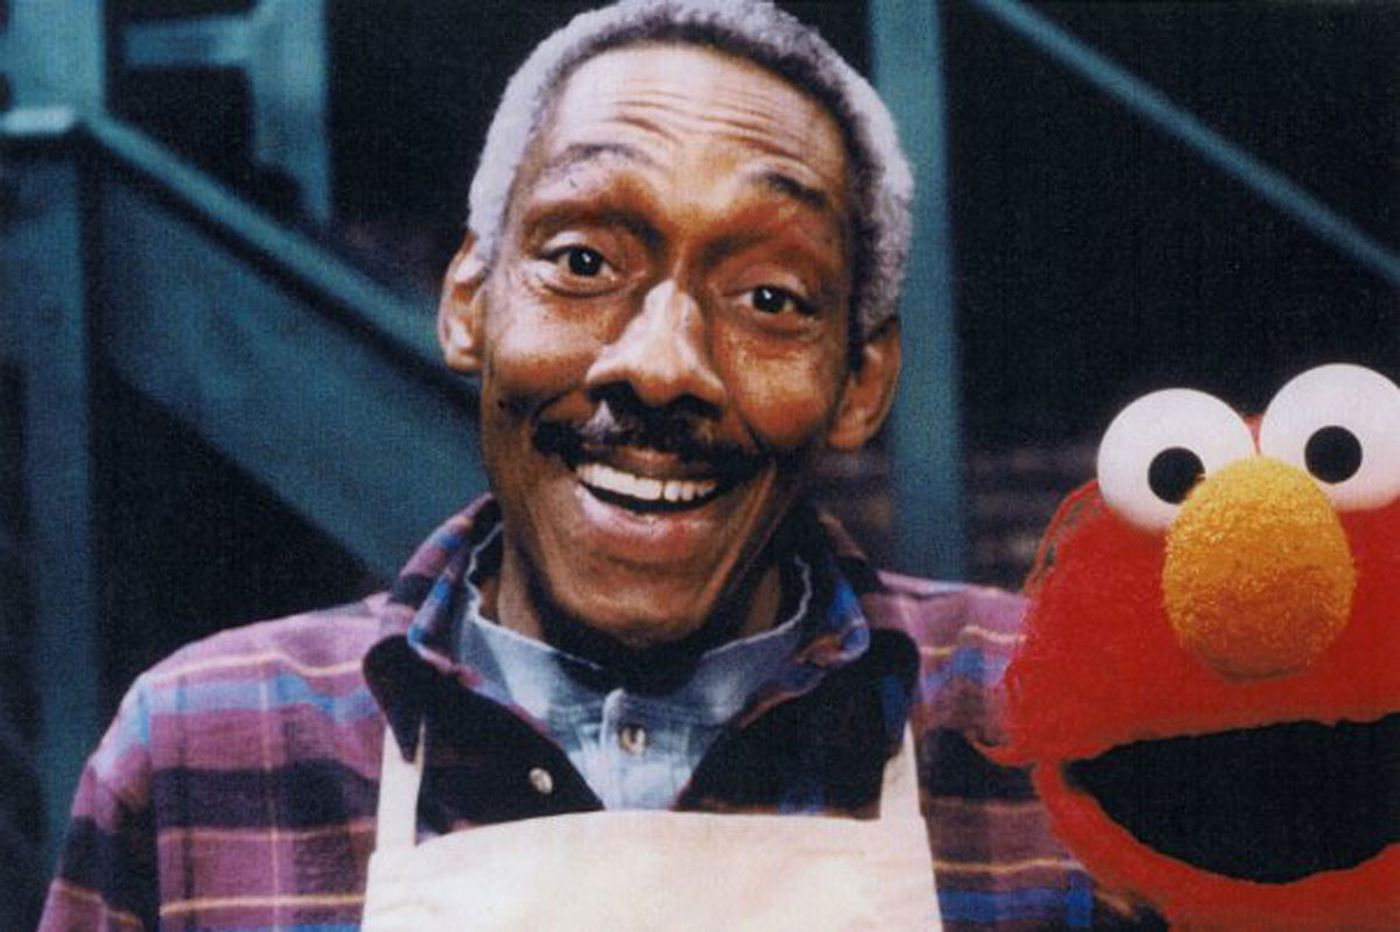 David L. Smyrl, Mr. Handford on 'Sesame Street'